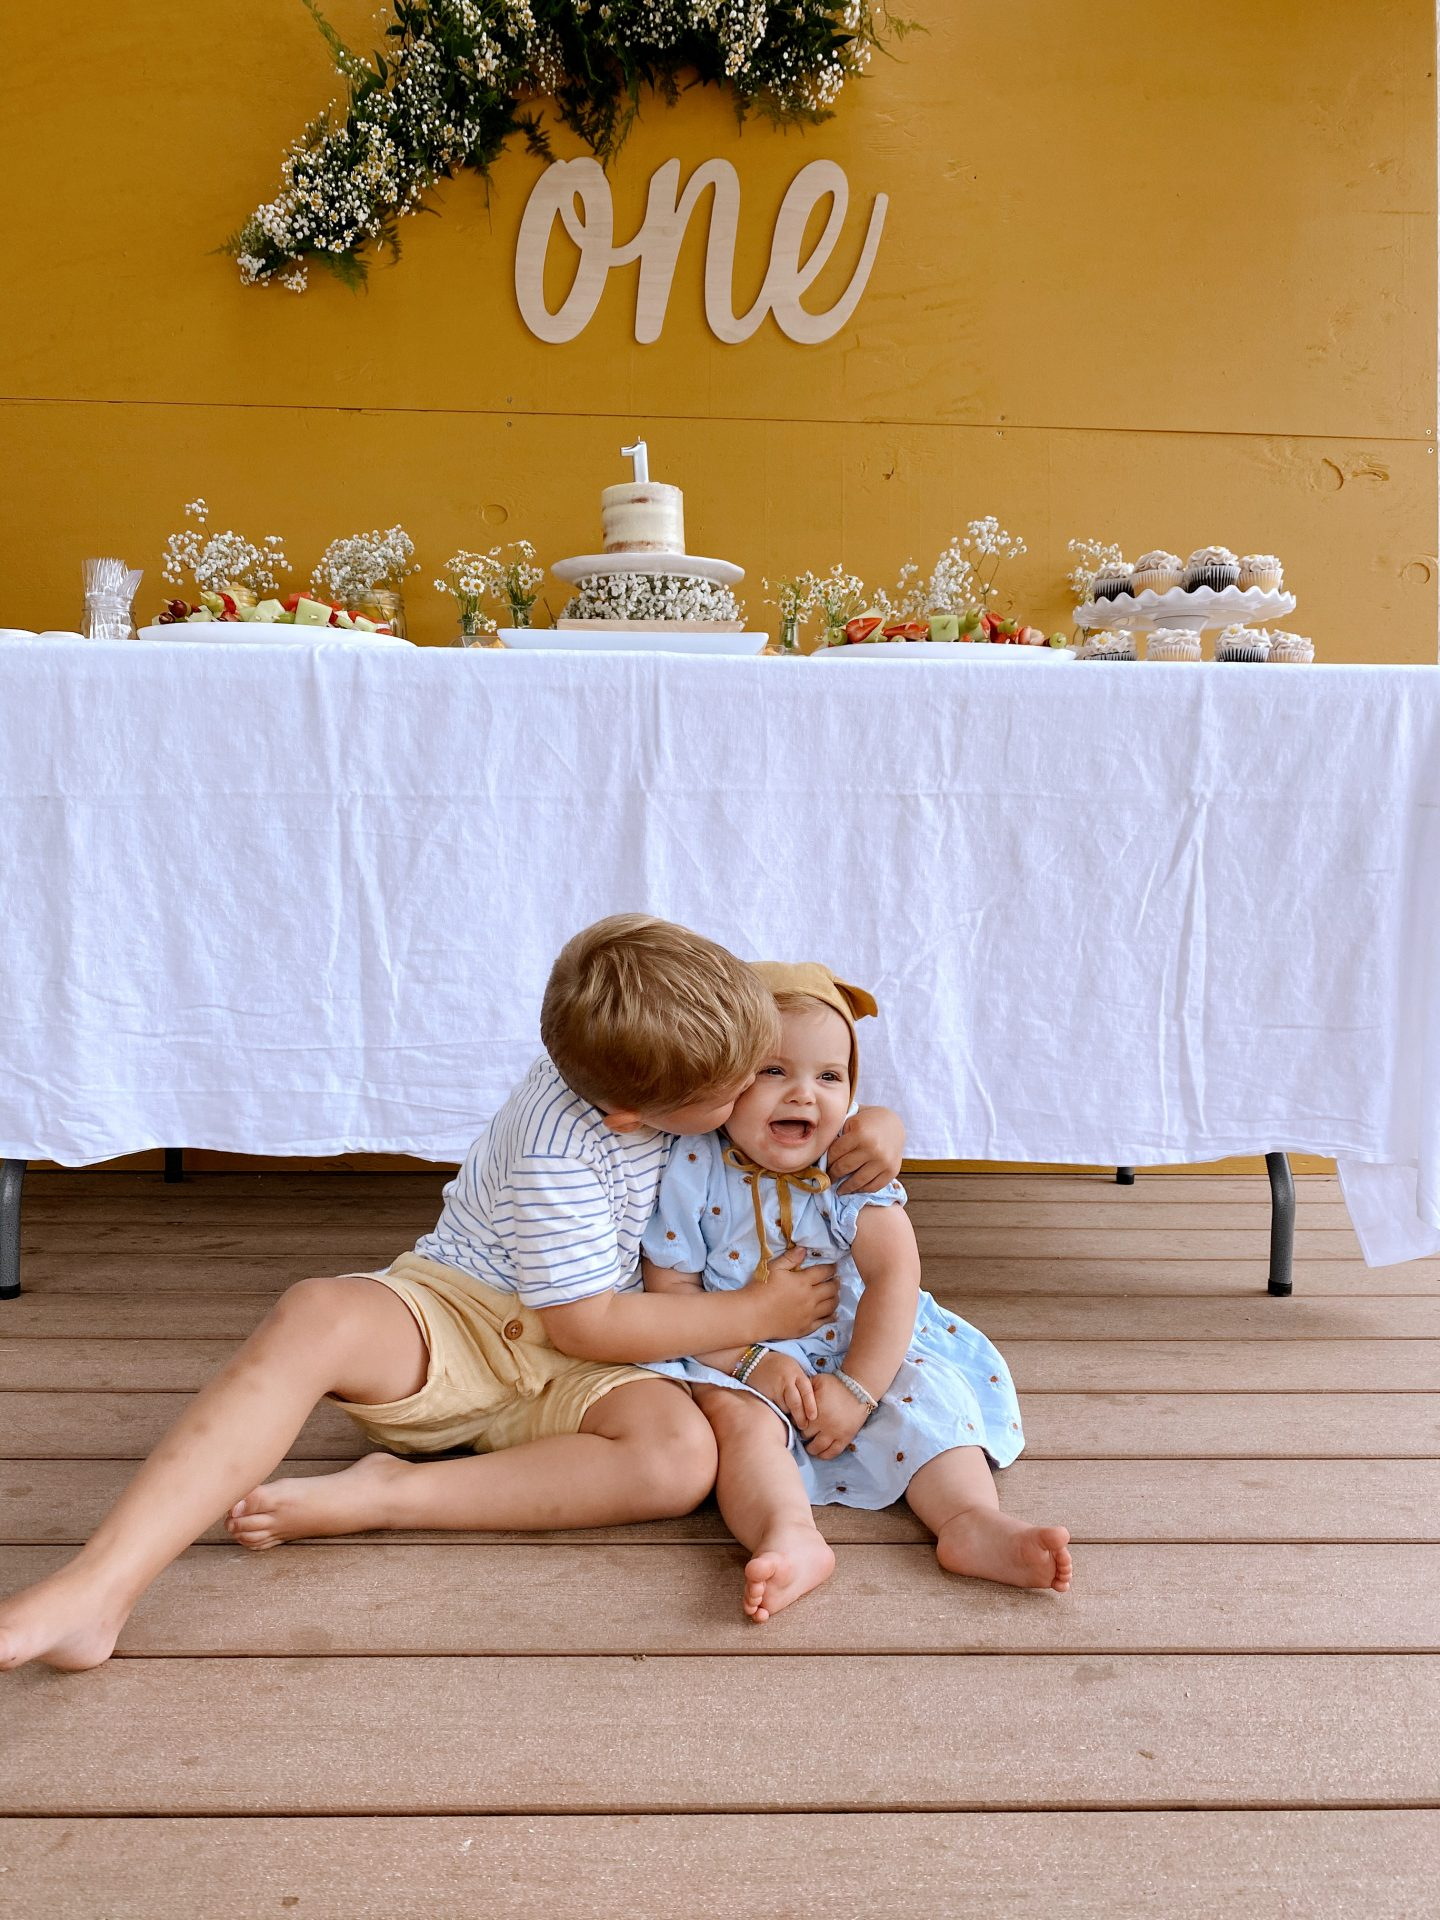 Daisy Theme Party by popular San Diego lifestyle blog, Navy Grace: image of a mustard yellow backdrop, wooden 'one' sign, daisy garland, food table with a cake, daisy shaped cakes, fruit skewers, vases filled with baby's breath and daisies, and daisy cupcakes and a little boy and one year old baby sitting in front of the food table wearing a blue daisy print Zara dress and Briar Baby Honey Bear bonnet.